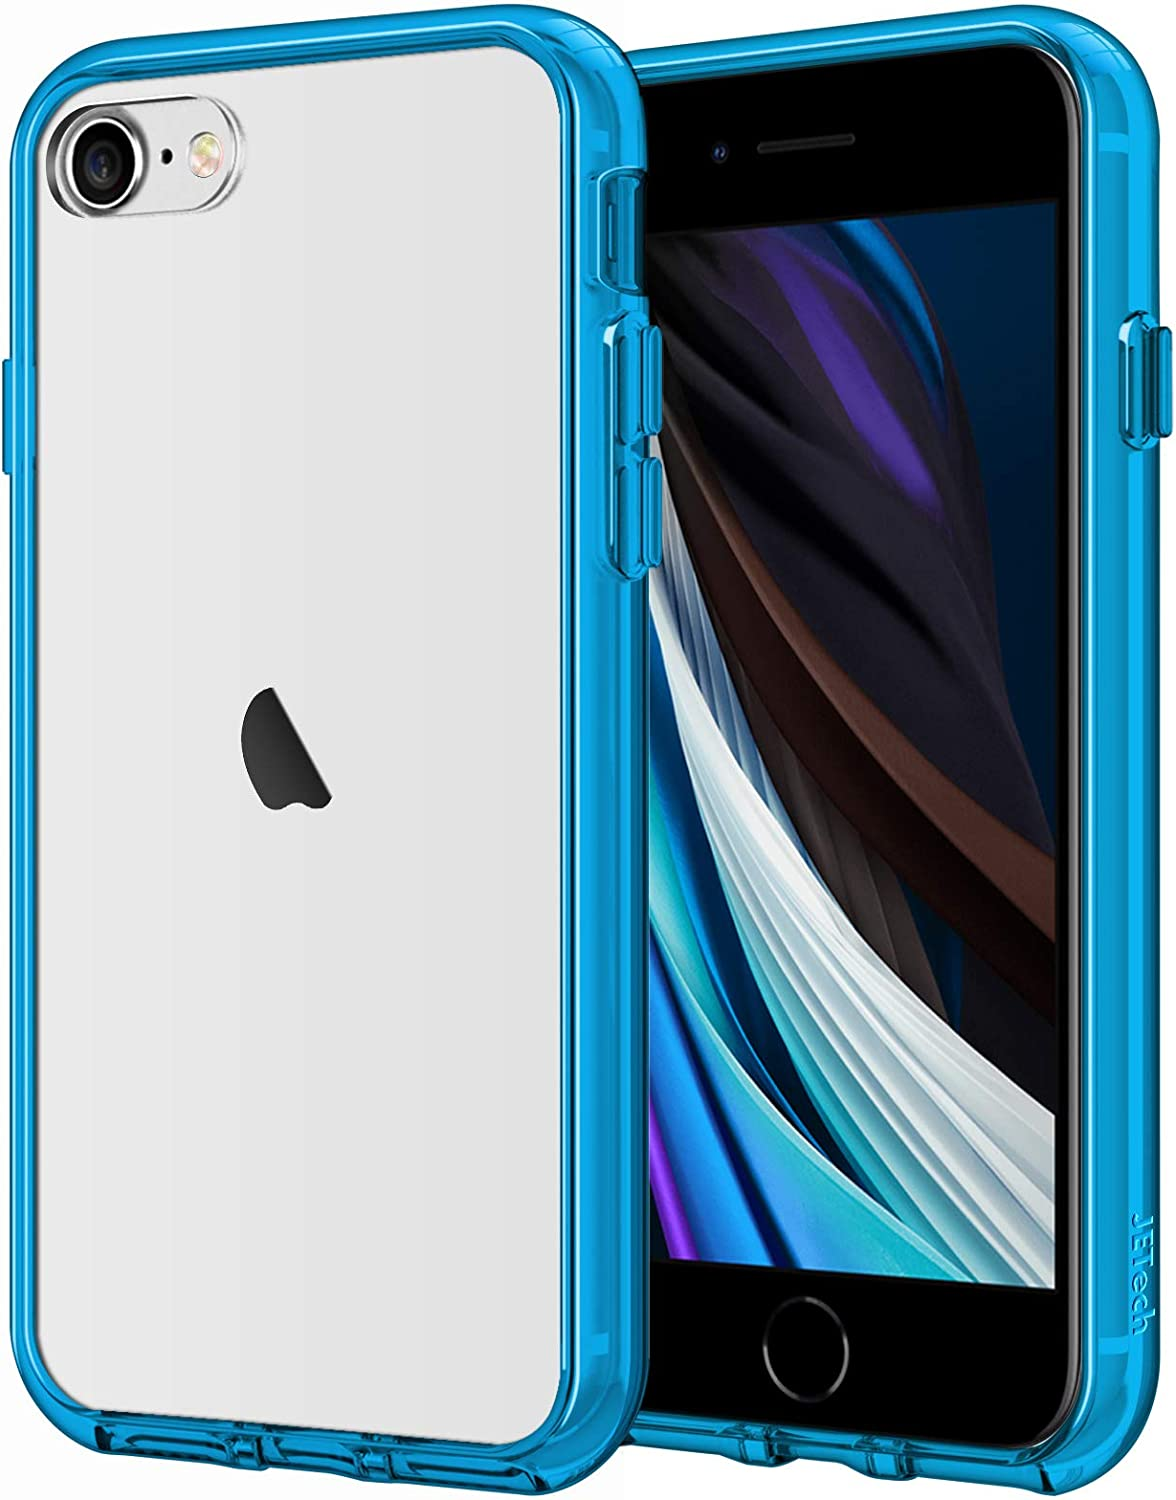 JETech Case Compatible with iPhone 8, iPhone 7, iPhone SE 2020, 4.7-Inch, Shockproof Bumper Cover, Anti-Scratch Clear Back, Blue